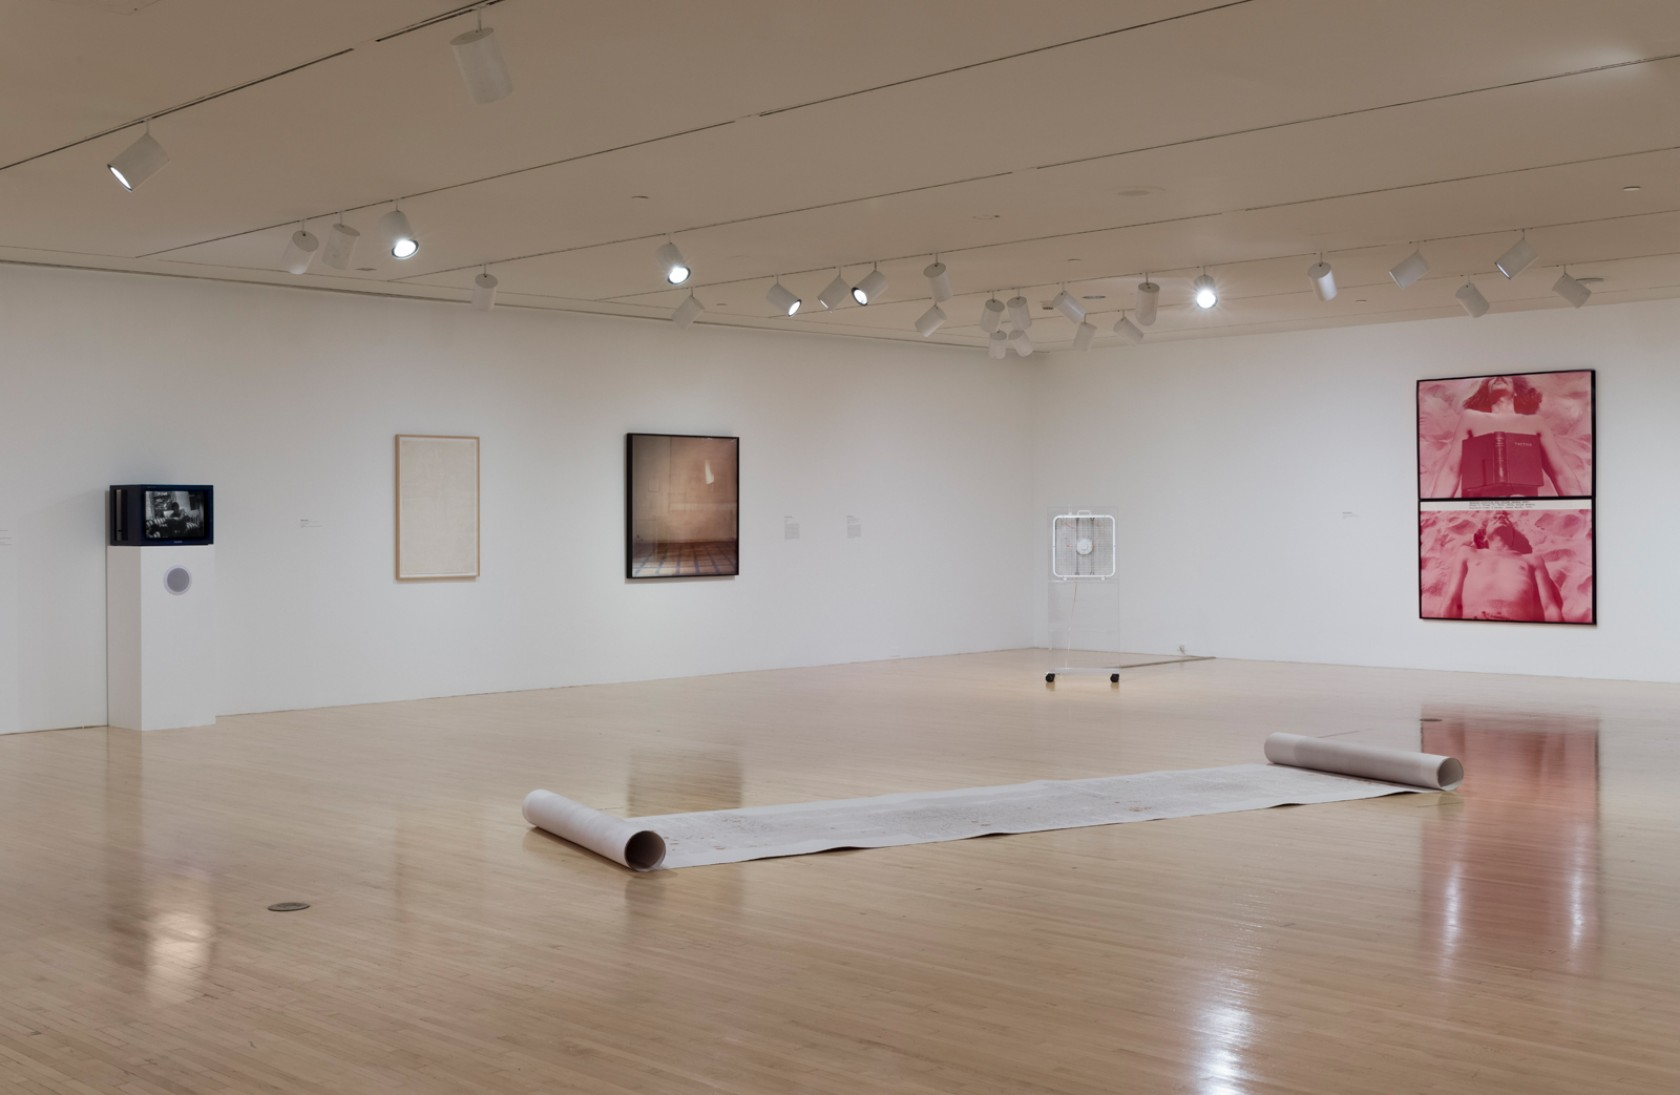 Installation view of Evidence: Selections from the Collection by Jeff McLane.